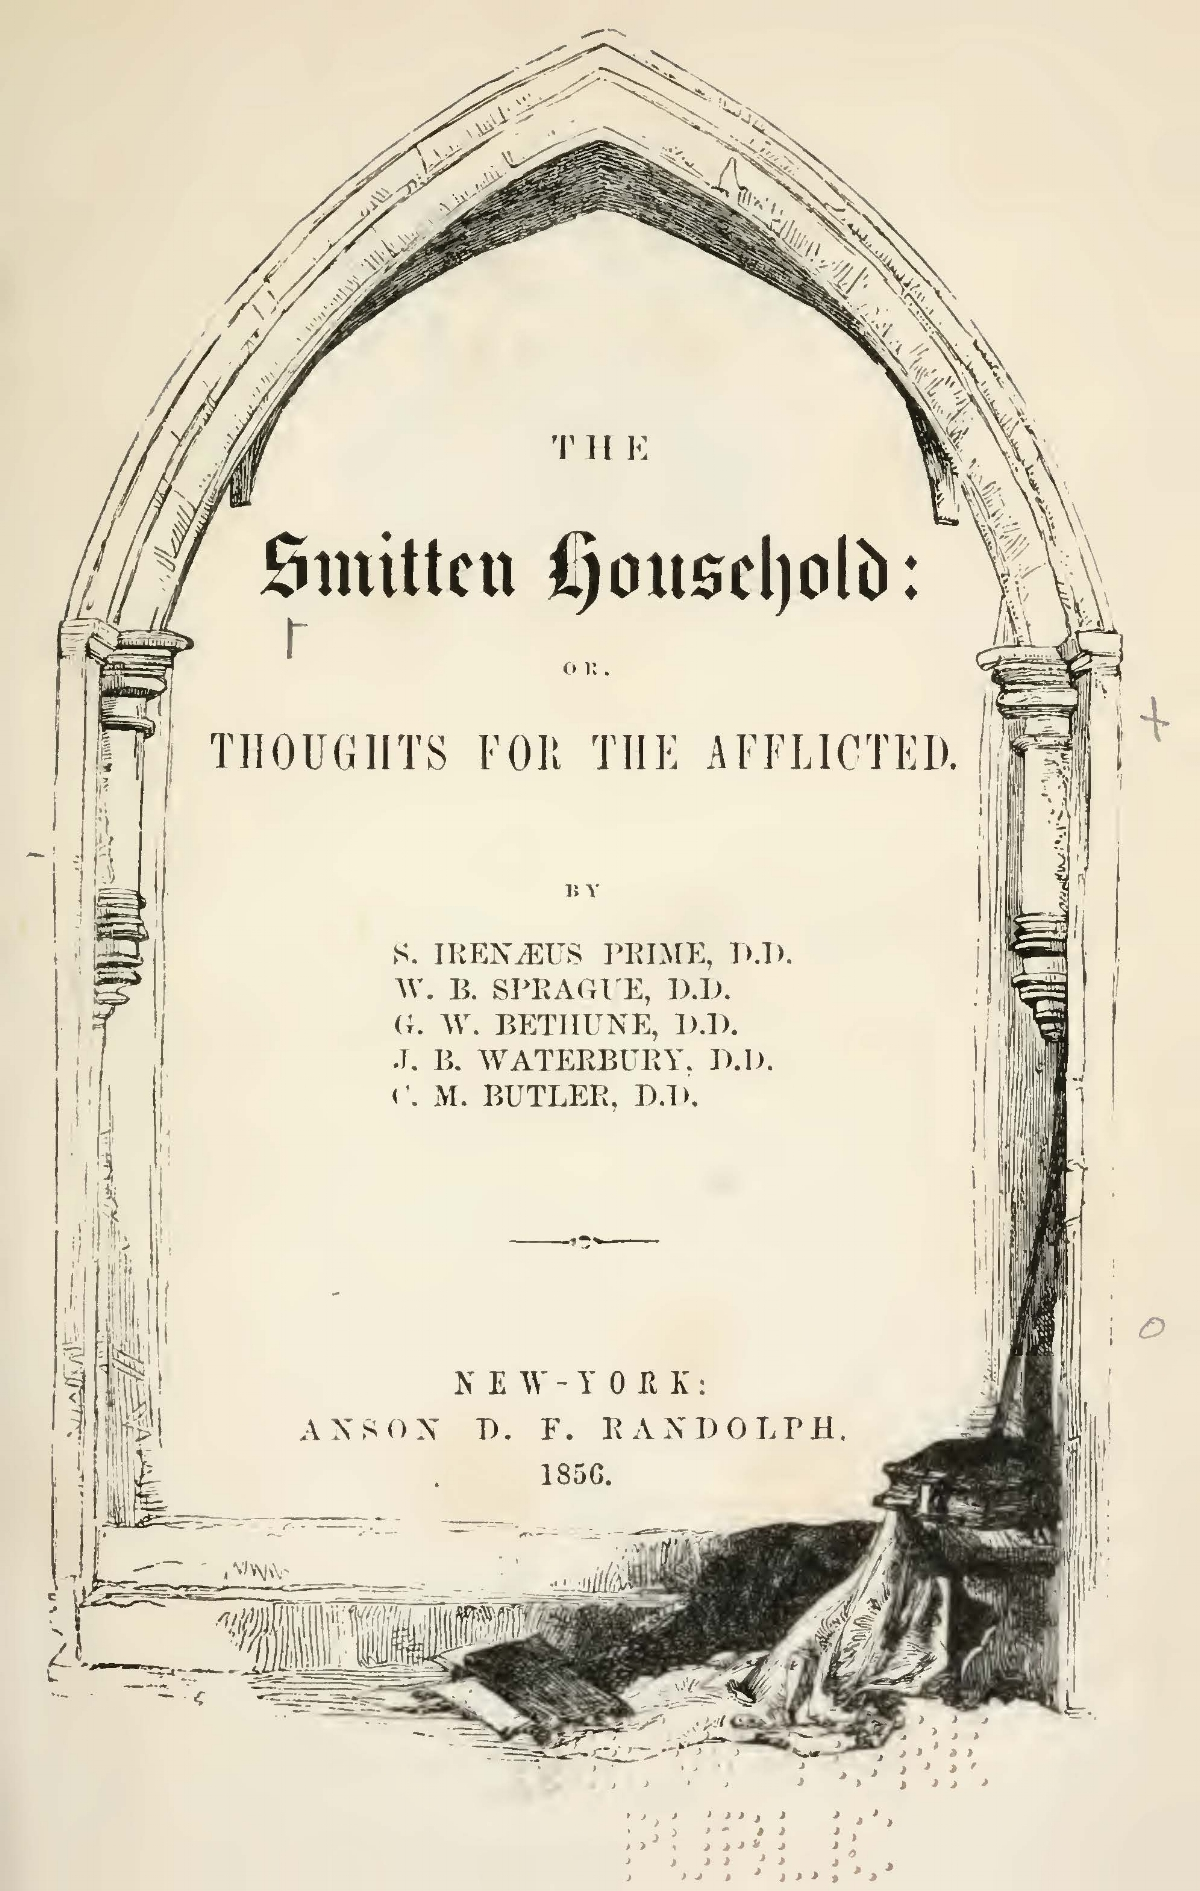 Prime, Samuel Irenaeus, The Smitten Household Title Page.jpg